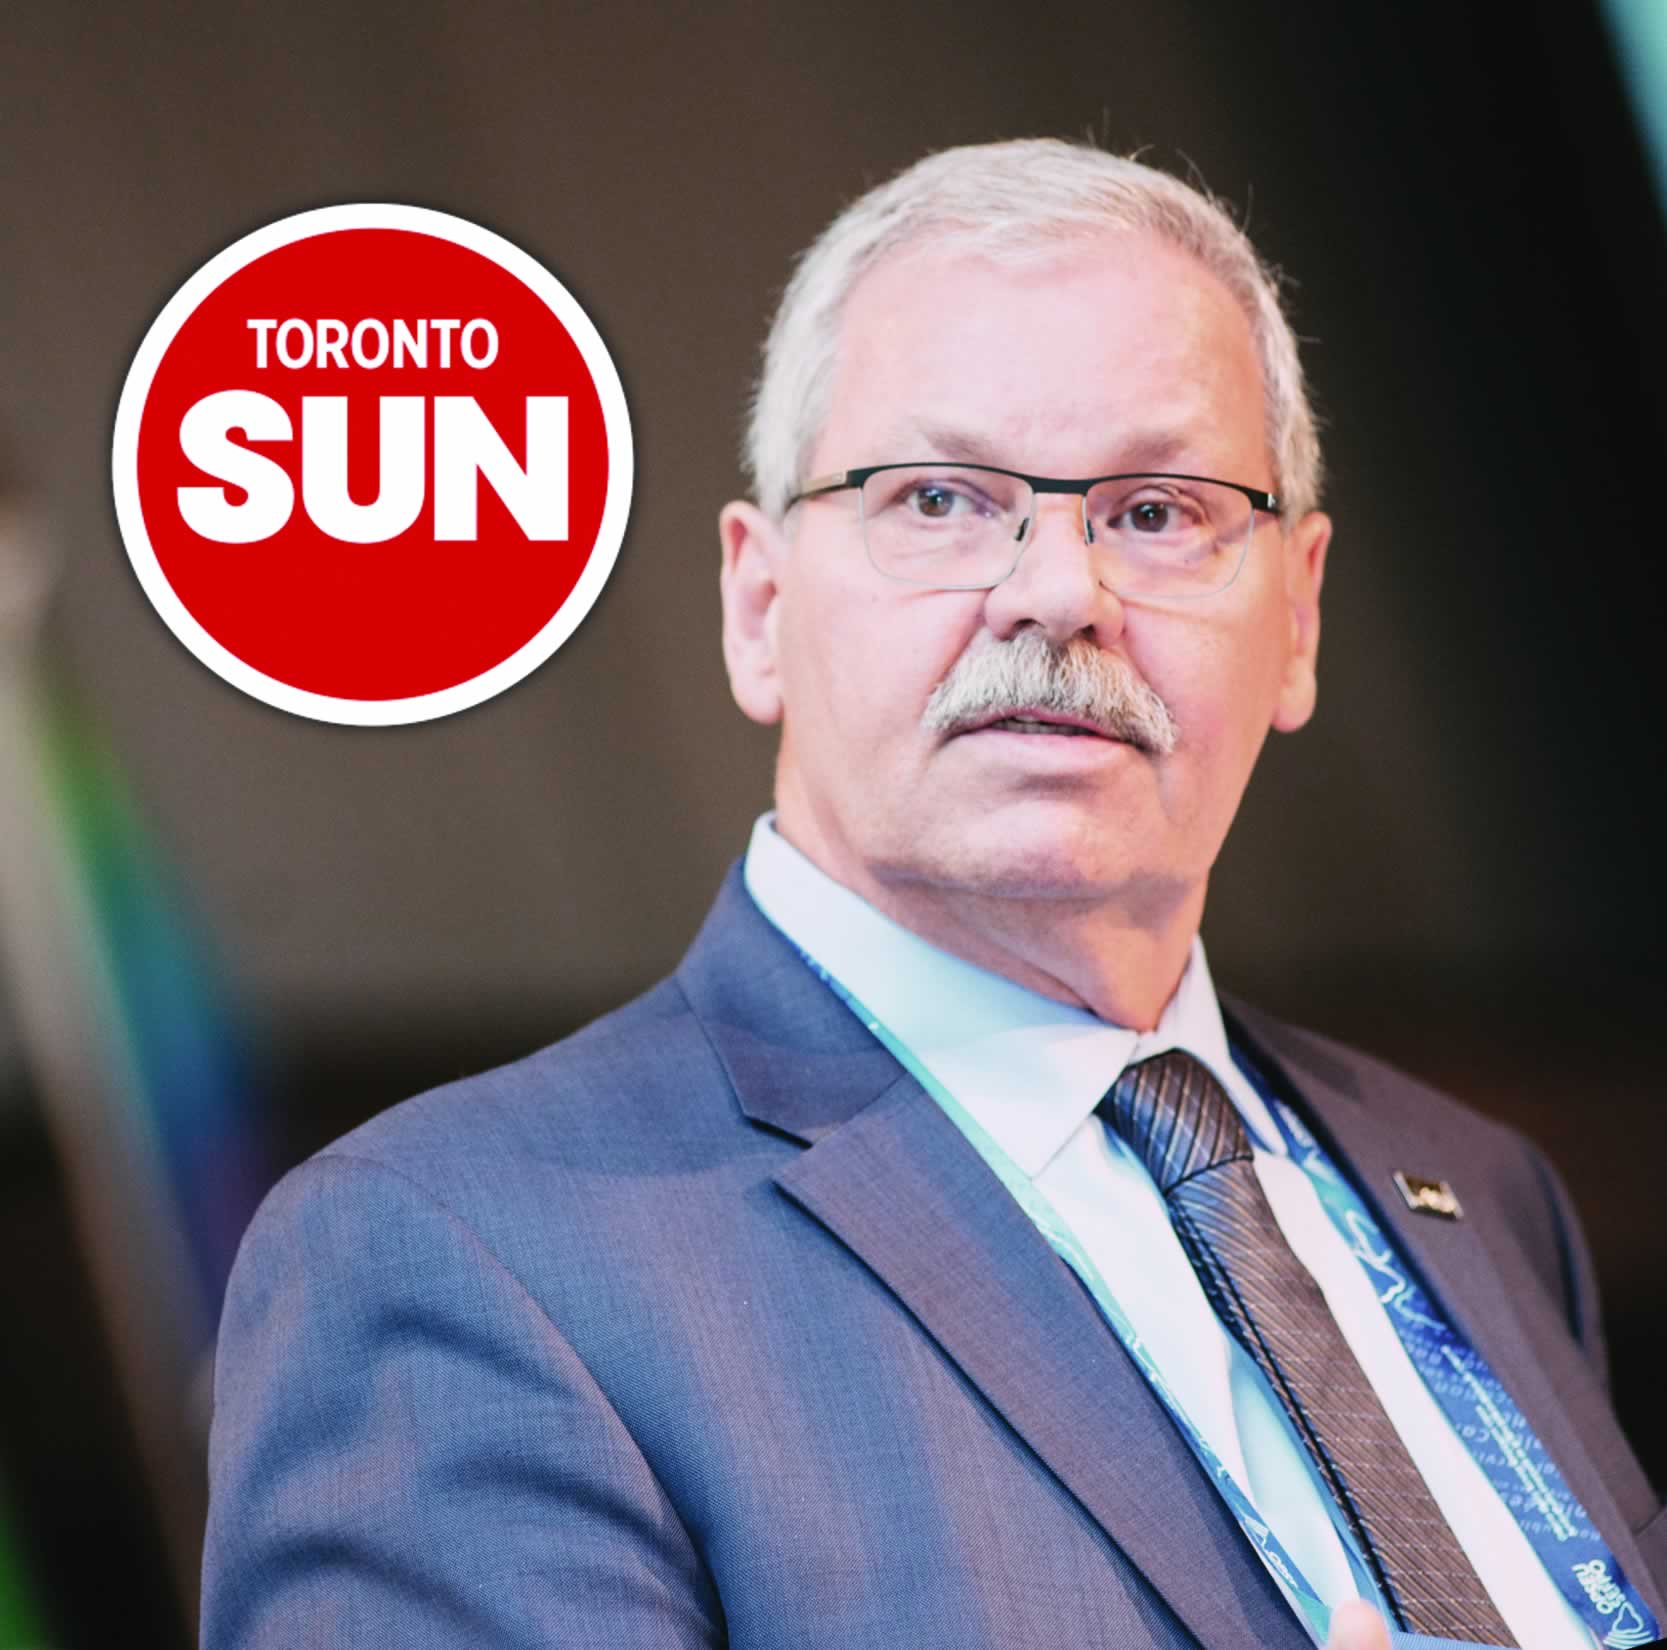 OPSEU President Warren (Smokey) Thomas with a Toronto Sun logo.